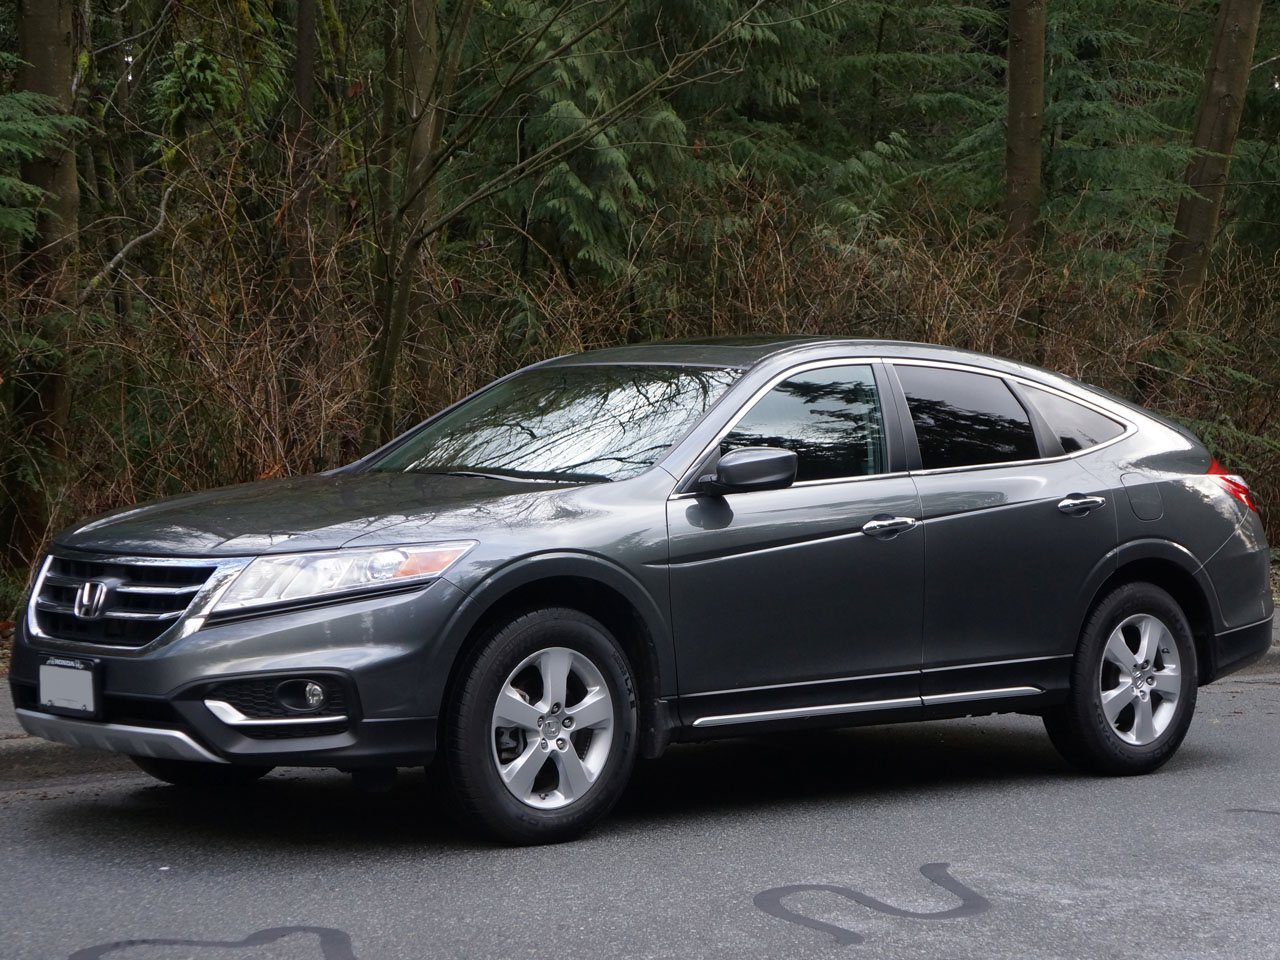 2014 honda crosstour ex l gets unveiled on the road the best auto. Black Bedroom Furniture Sets. Home Design Ideas